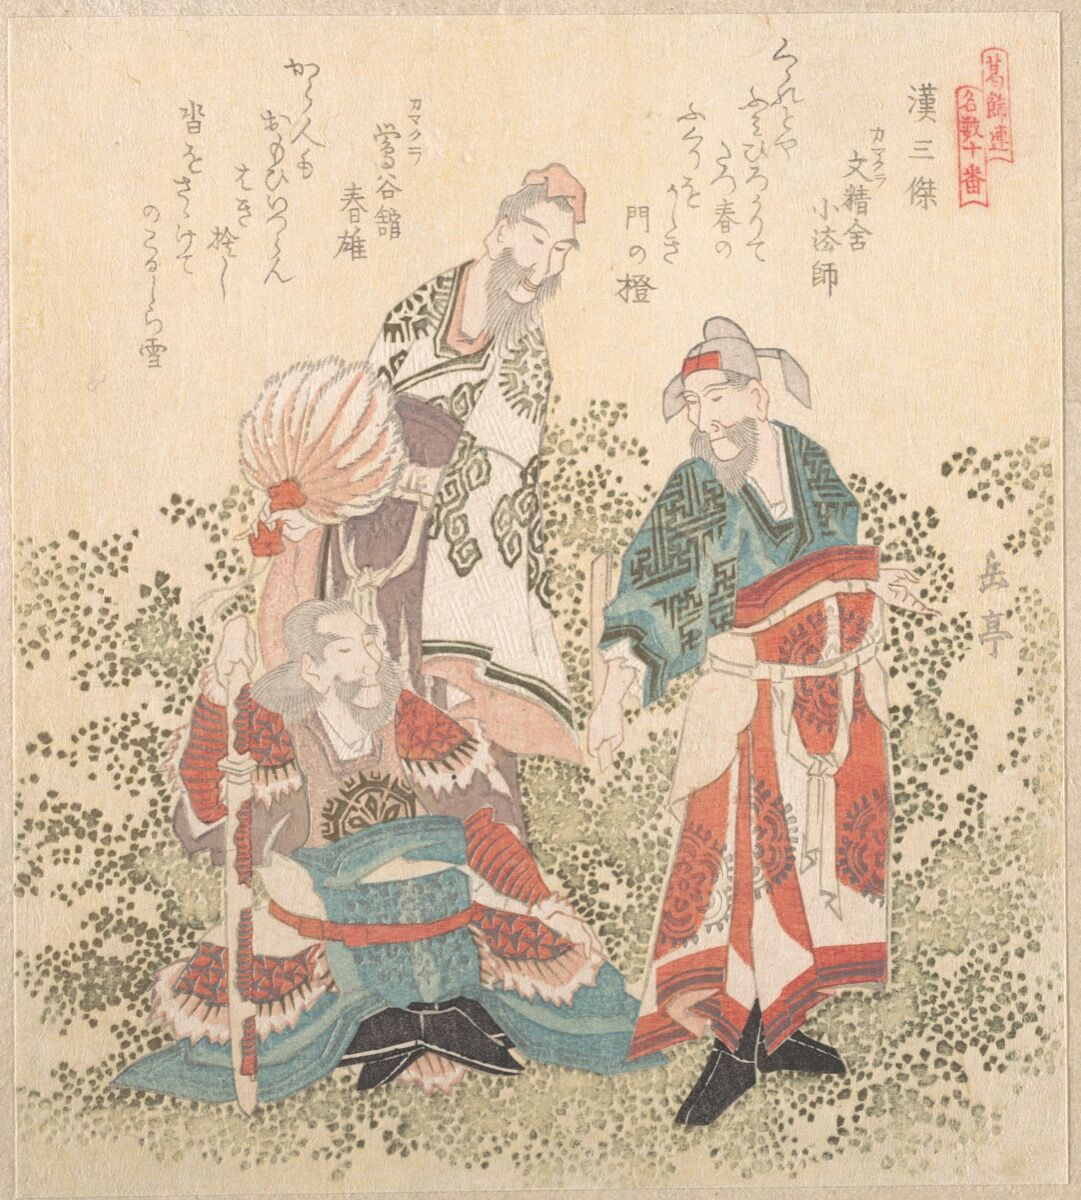 Yashima Gakutei, Three Great Wise Men of the Han Dynasty, 19th Century. H. O. Havemeyer Collection, courtesy of The Metropolitan Museum of Art.